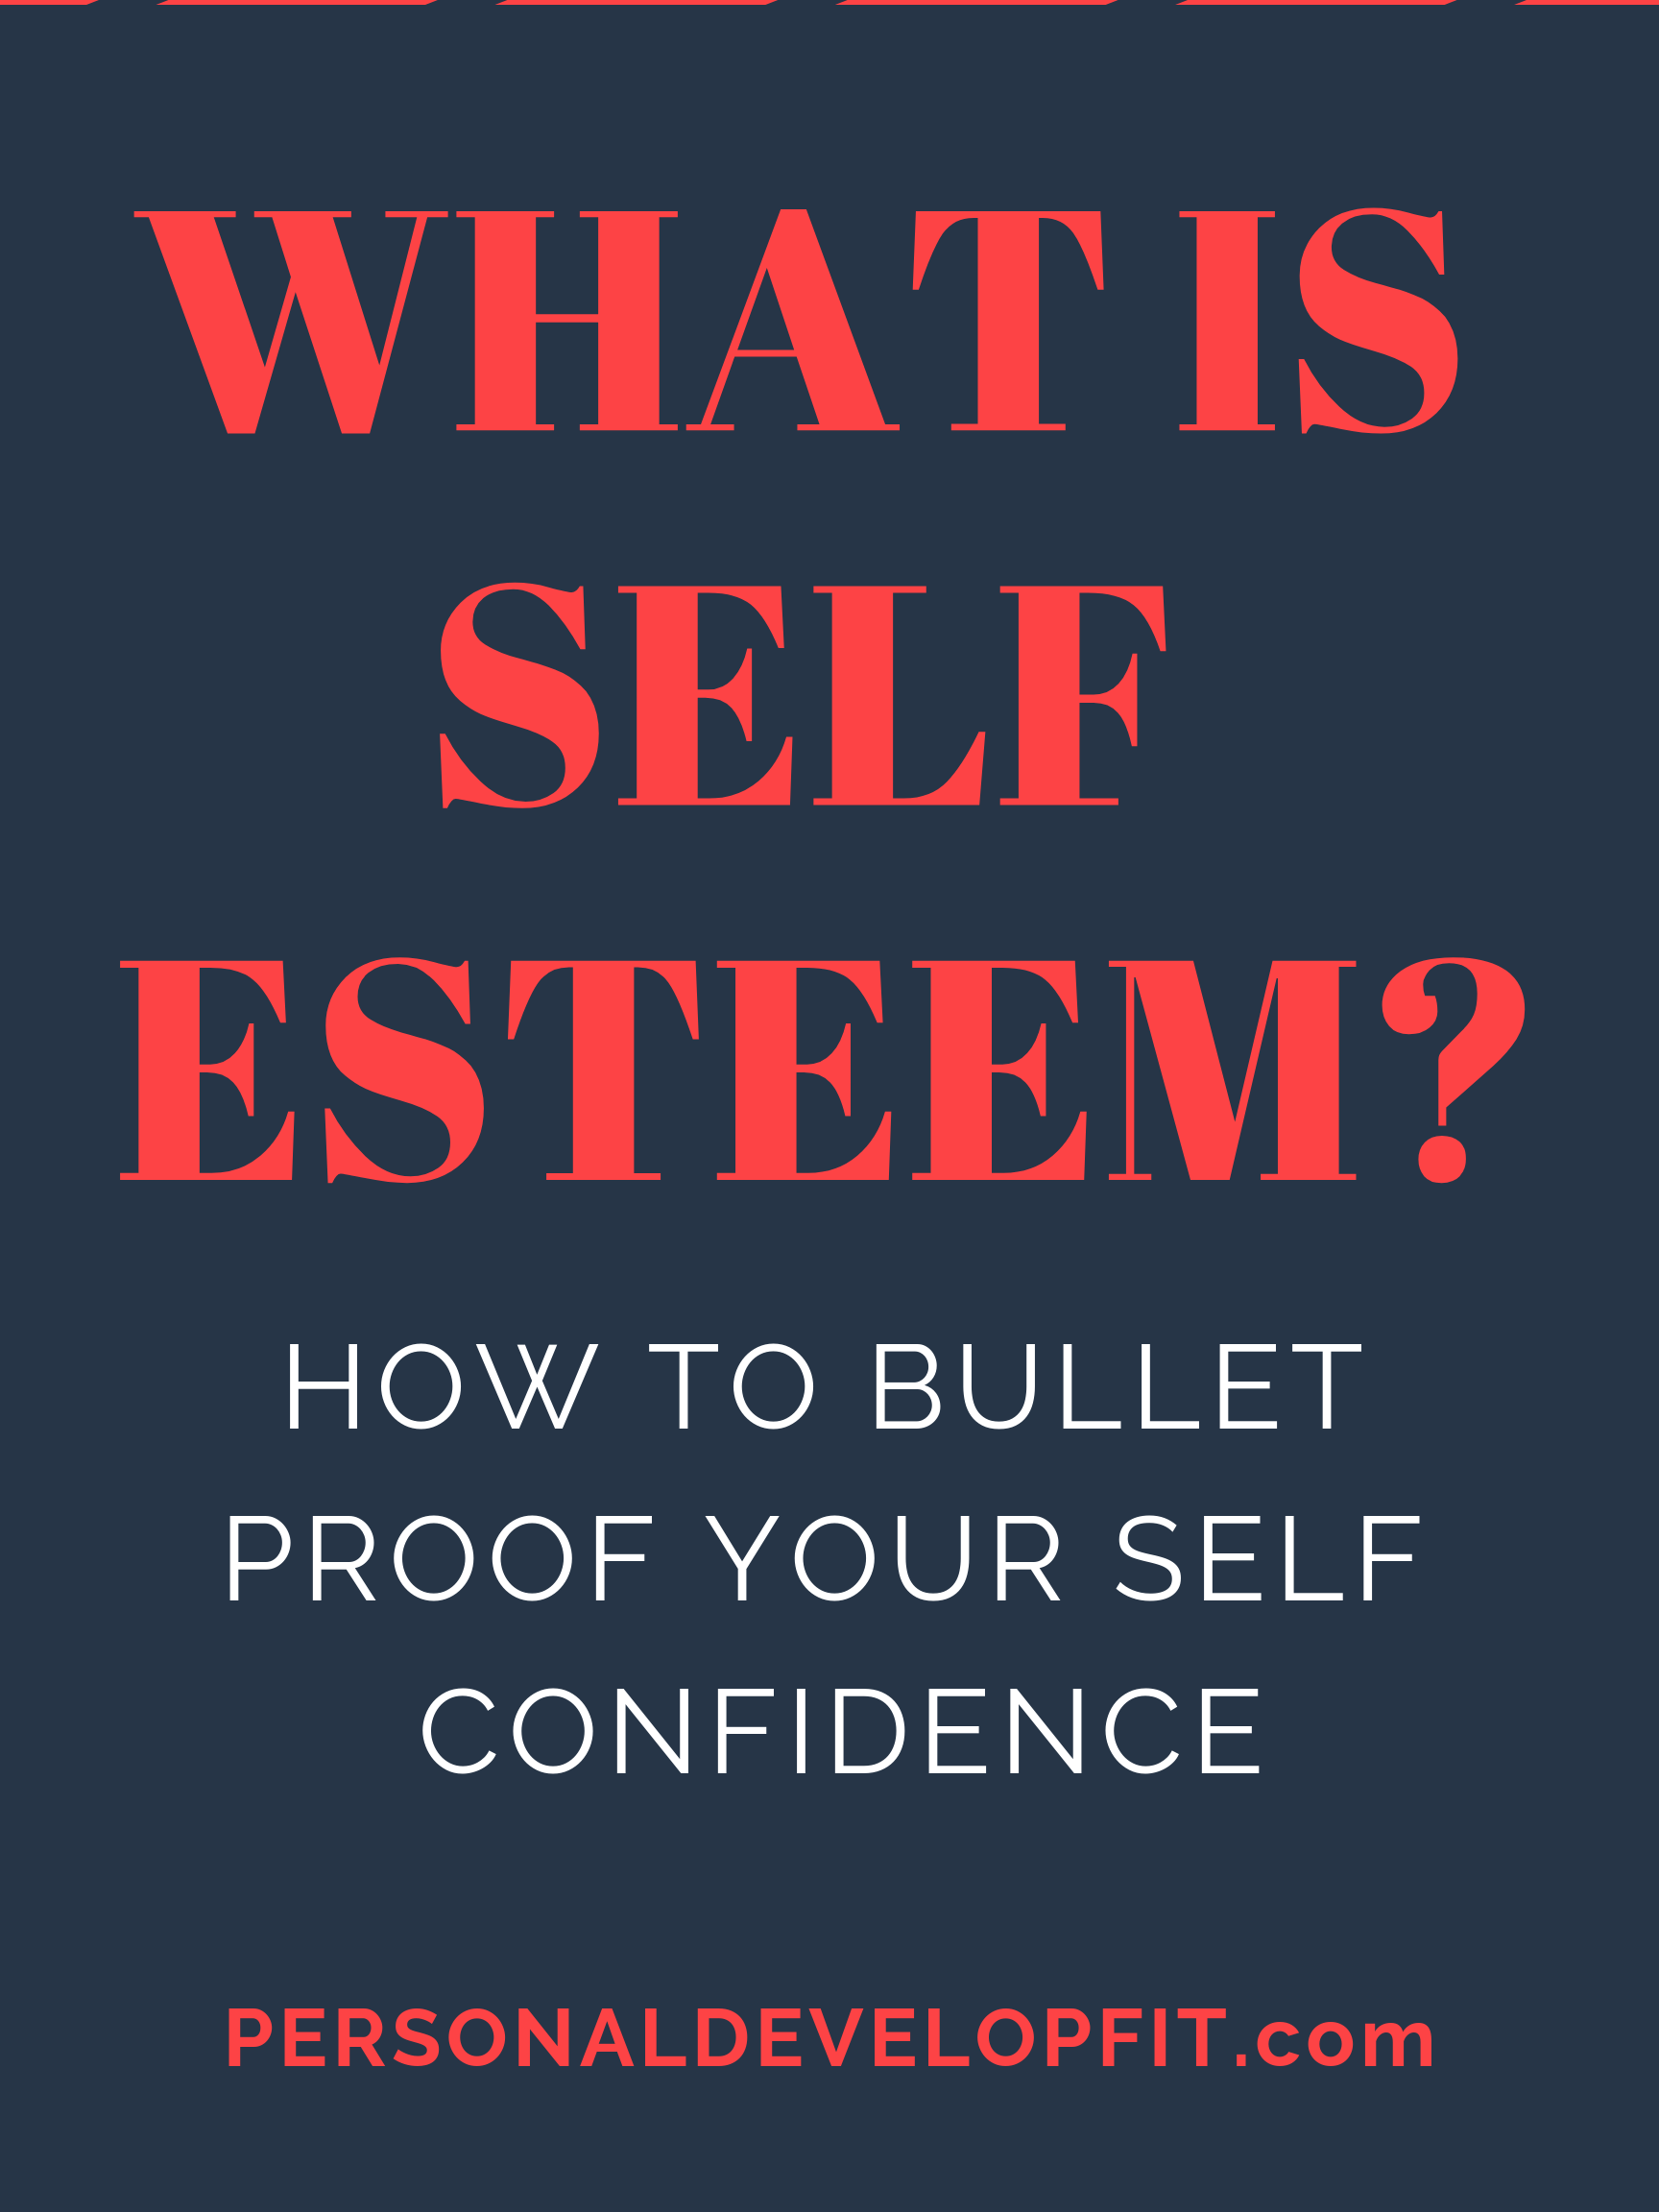 what is self esteem? we give an in depth definition as well as how